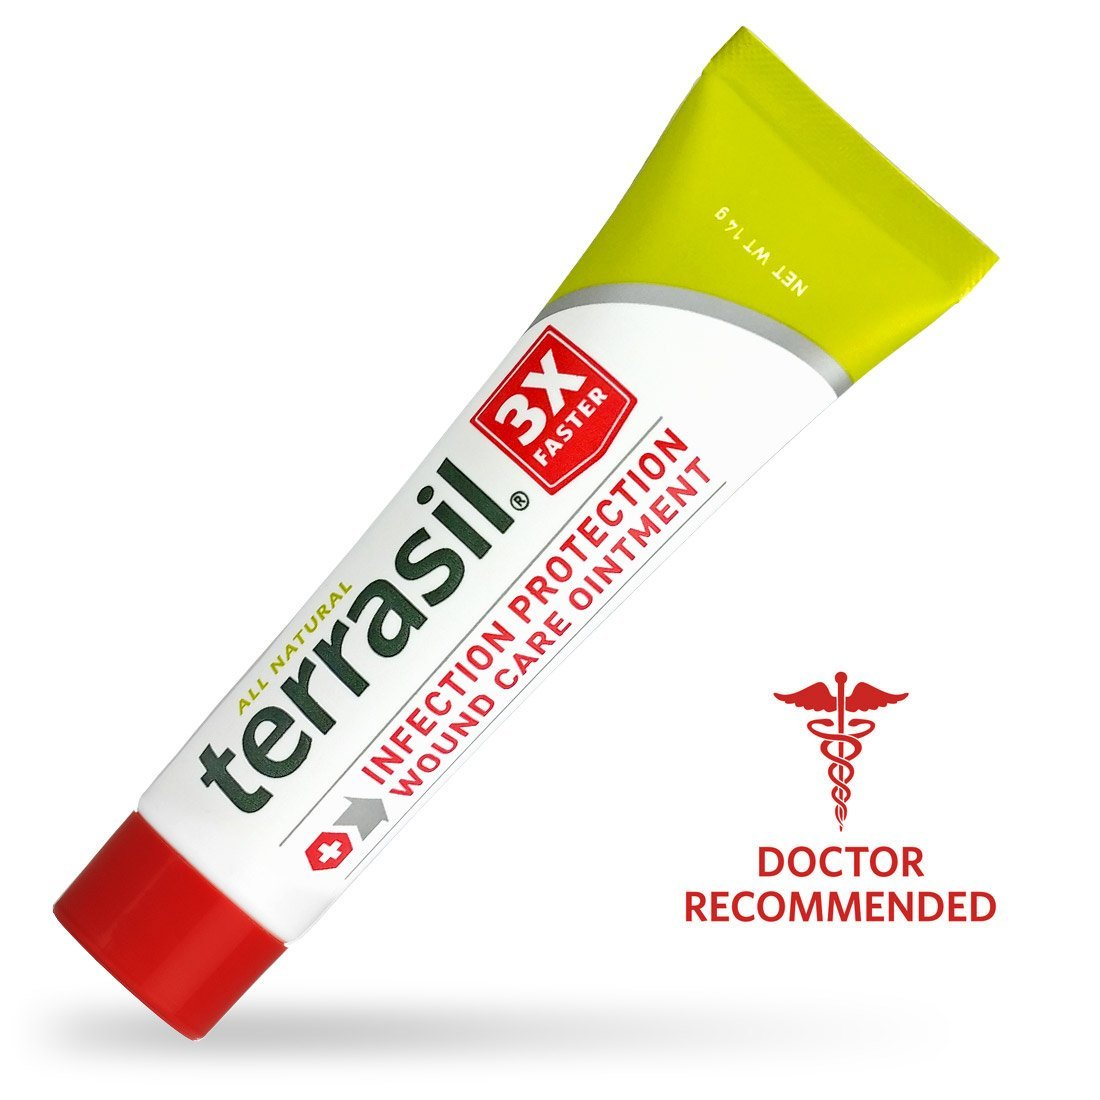 Terrasil® Wound Care - 3X Faster Healing, Dr. Recommended, 100% Guaranteed, Patented, Homeopathic, Infection Protection Ointment for bed sores, pressure sores, diabetic wounds, venous ulcers, foot and leg ulcers, cuts, scrapes, and burns (14 gram tube)